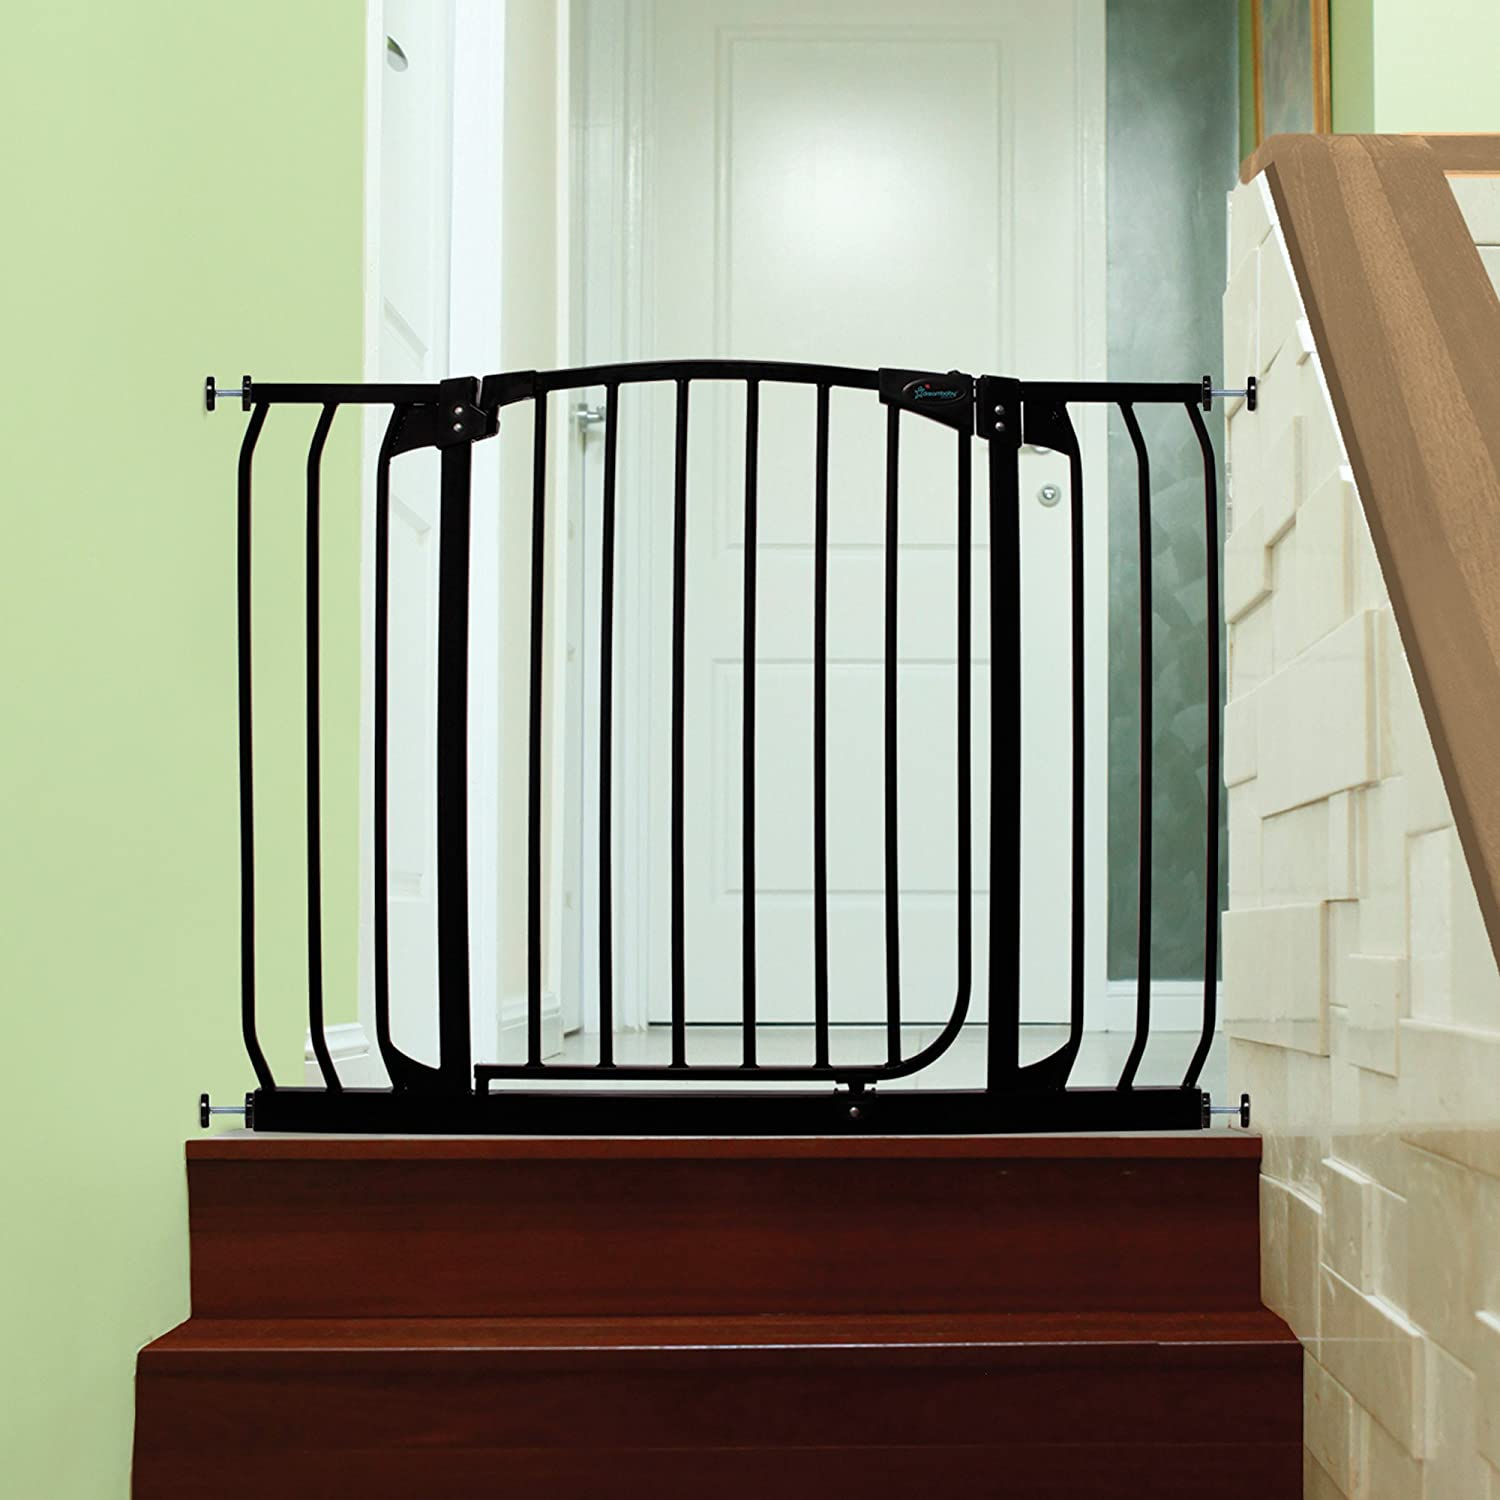 1 gate Dreambaby Chelsea Safety Gate Set fits 71cm-98cm White 2 extensions